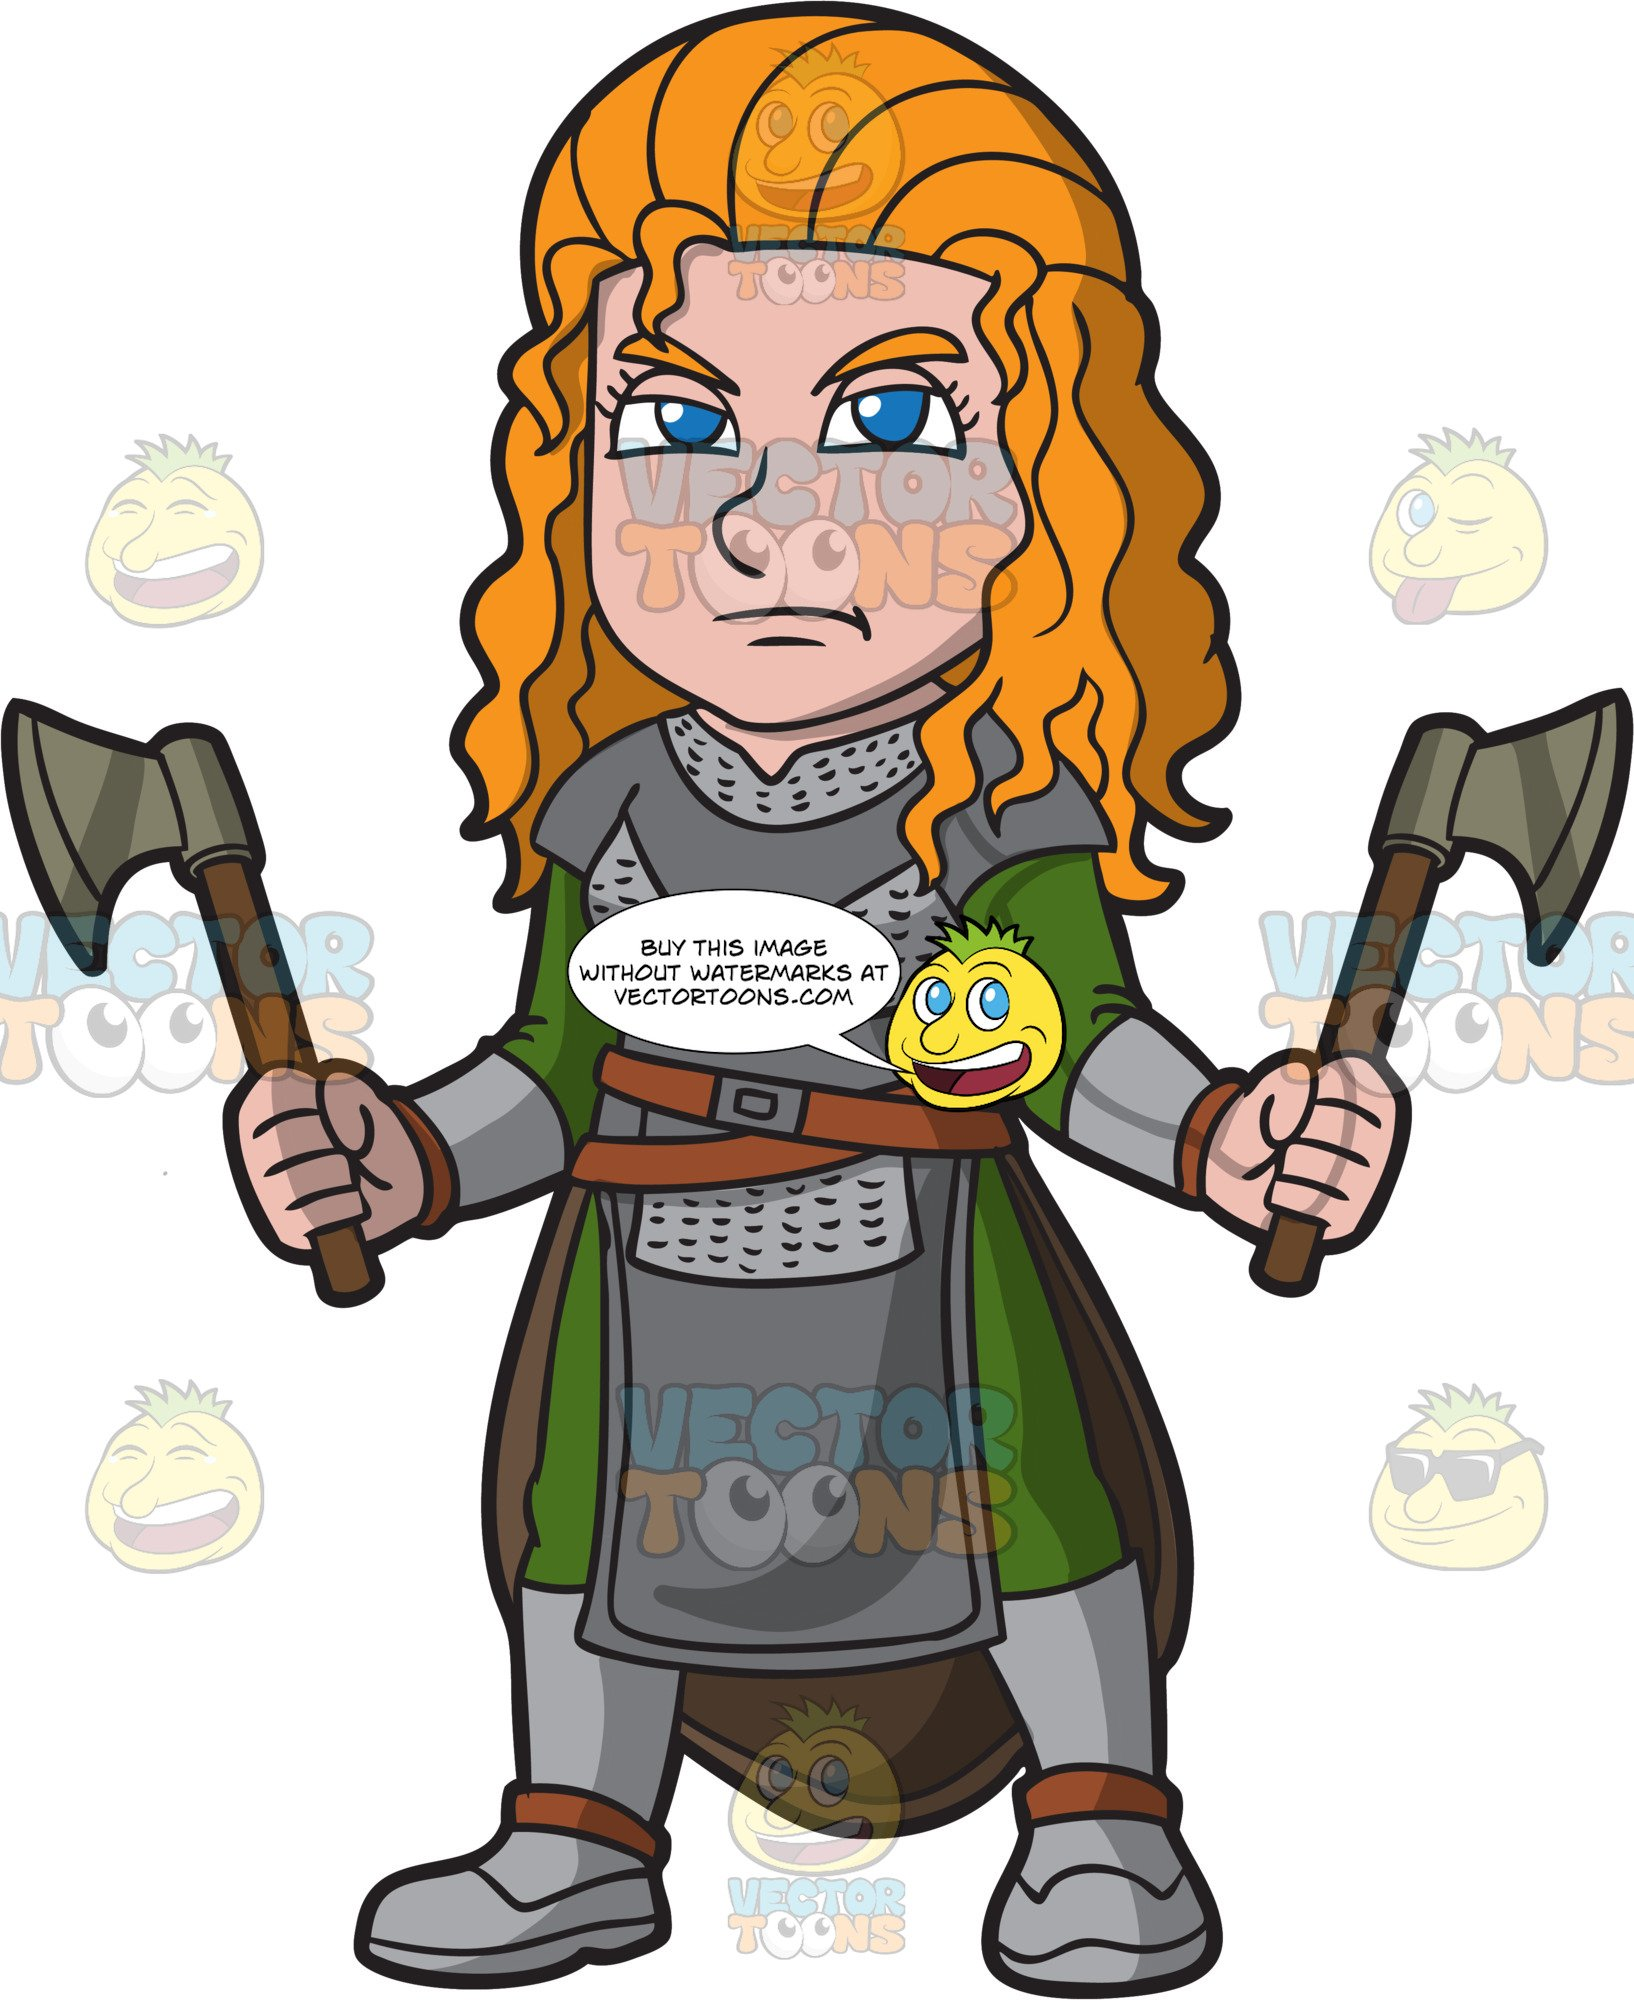 Female viking clipart vector transparent library A Female Viking Wielding Axes vector transparent library